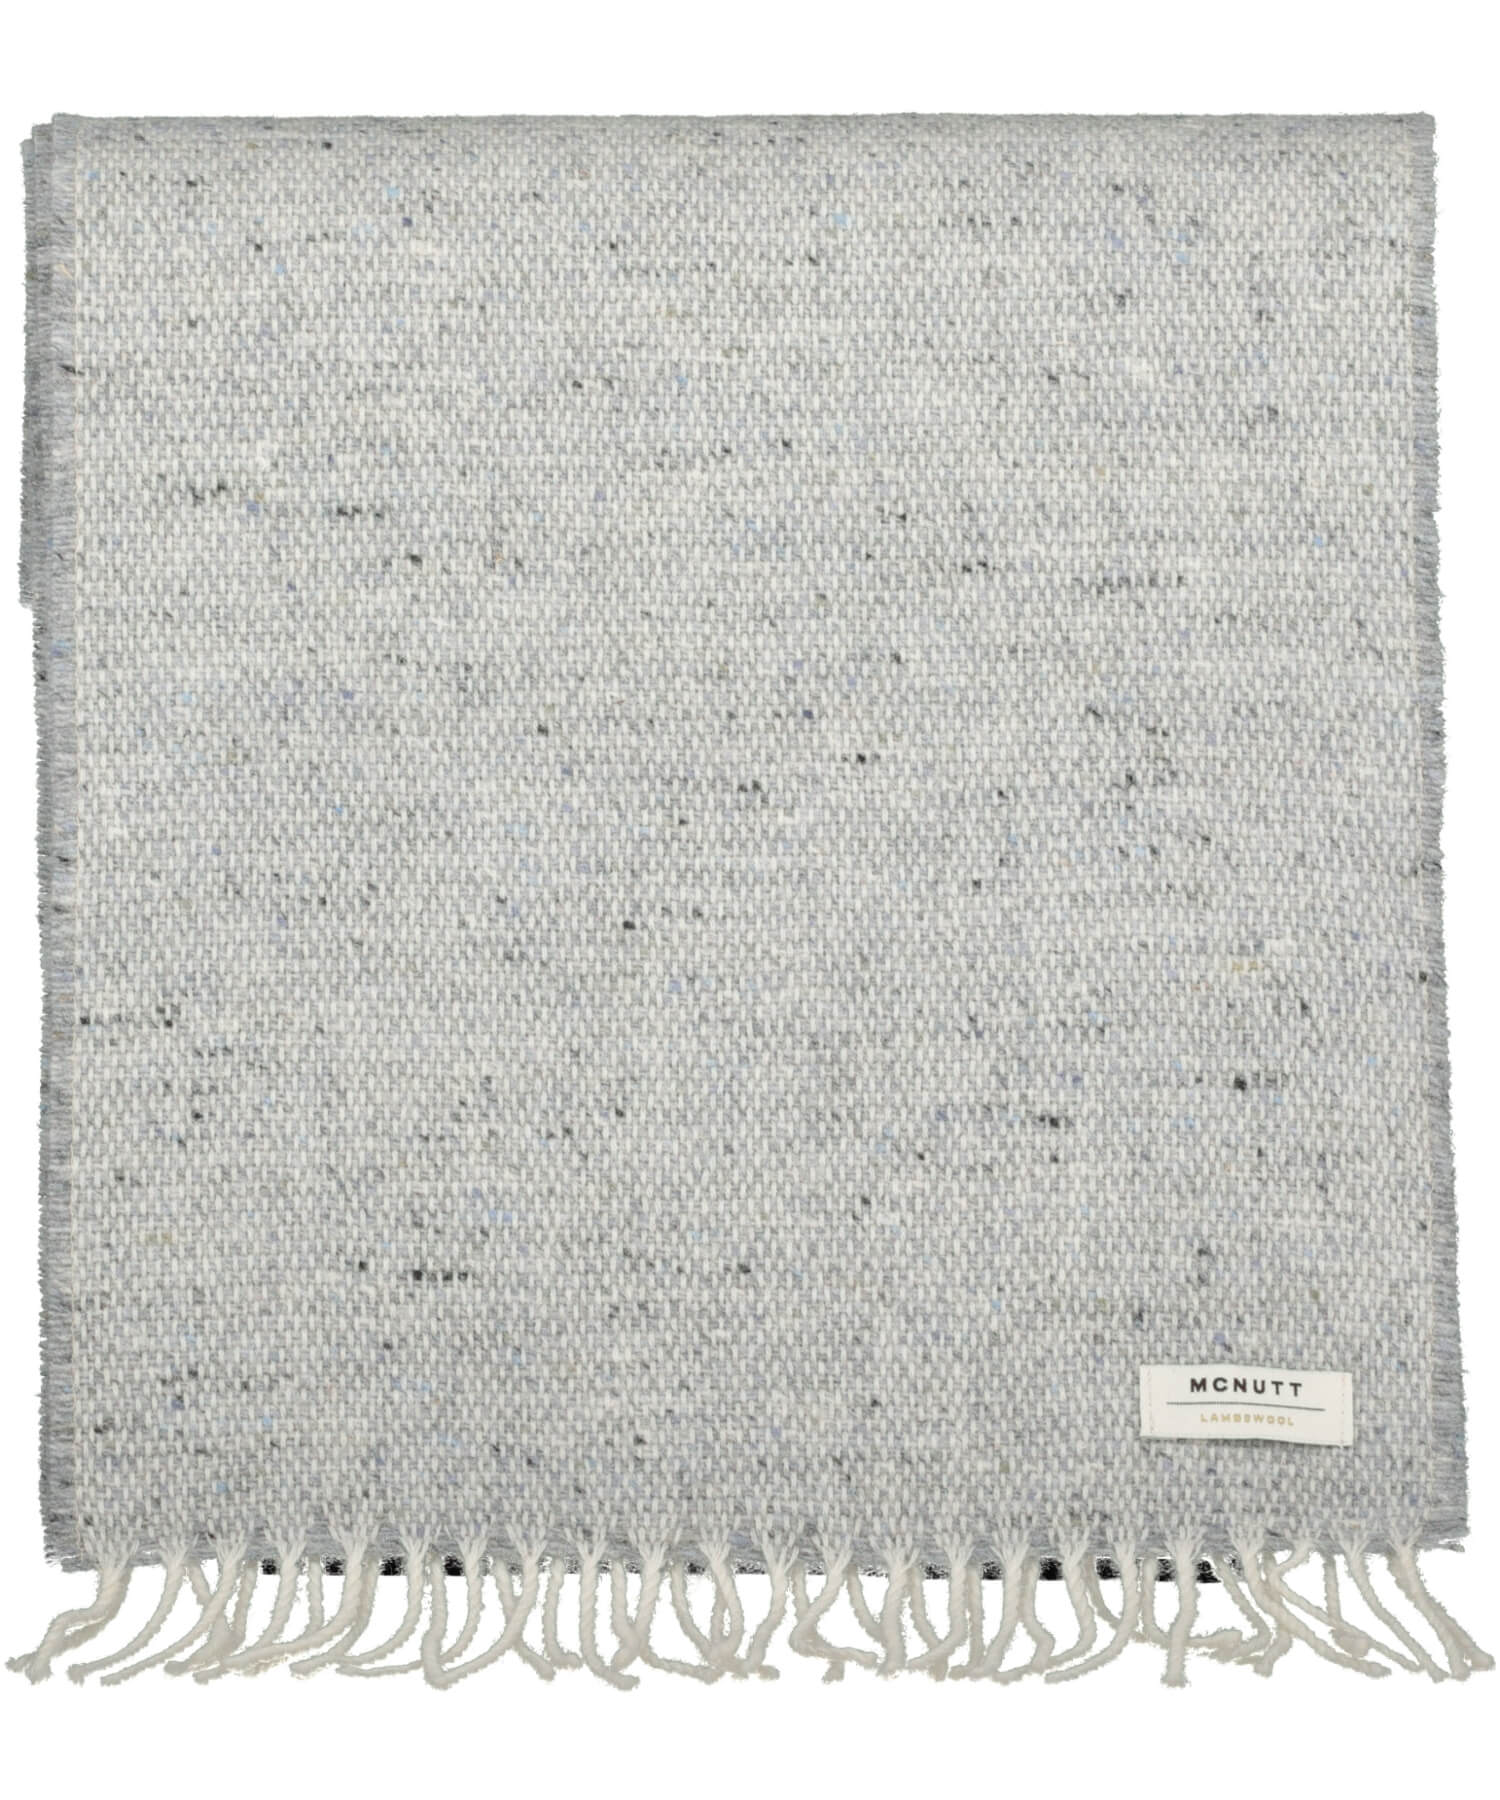 Donegal Tweed Scarf - Light Grey - [McNutts] - Unisex Scarves - Irish Gifts